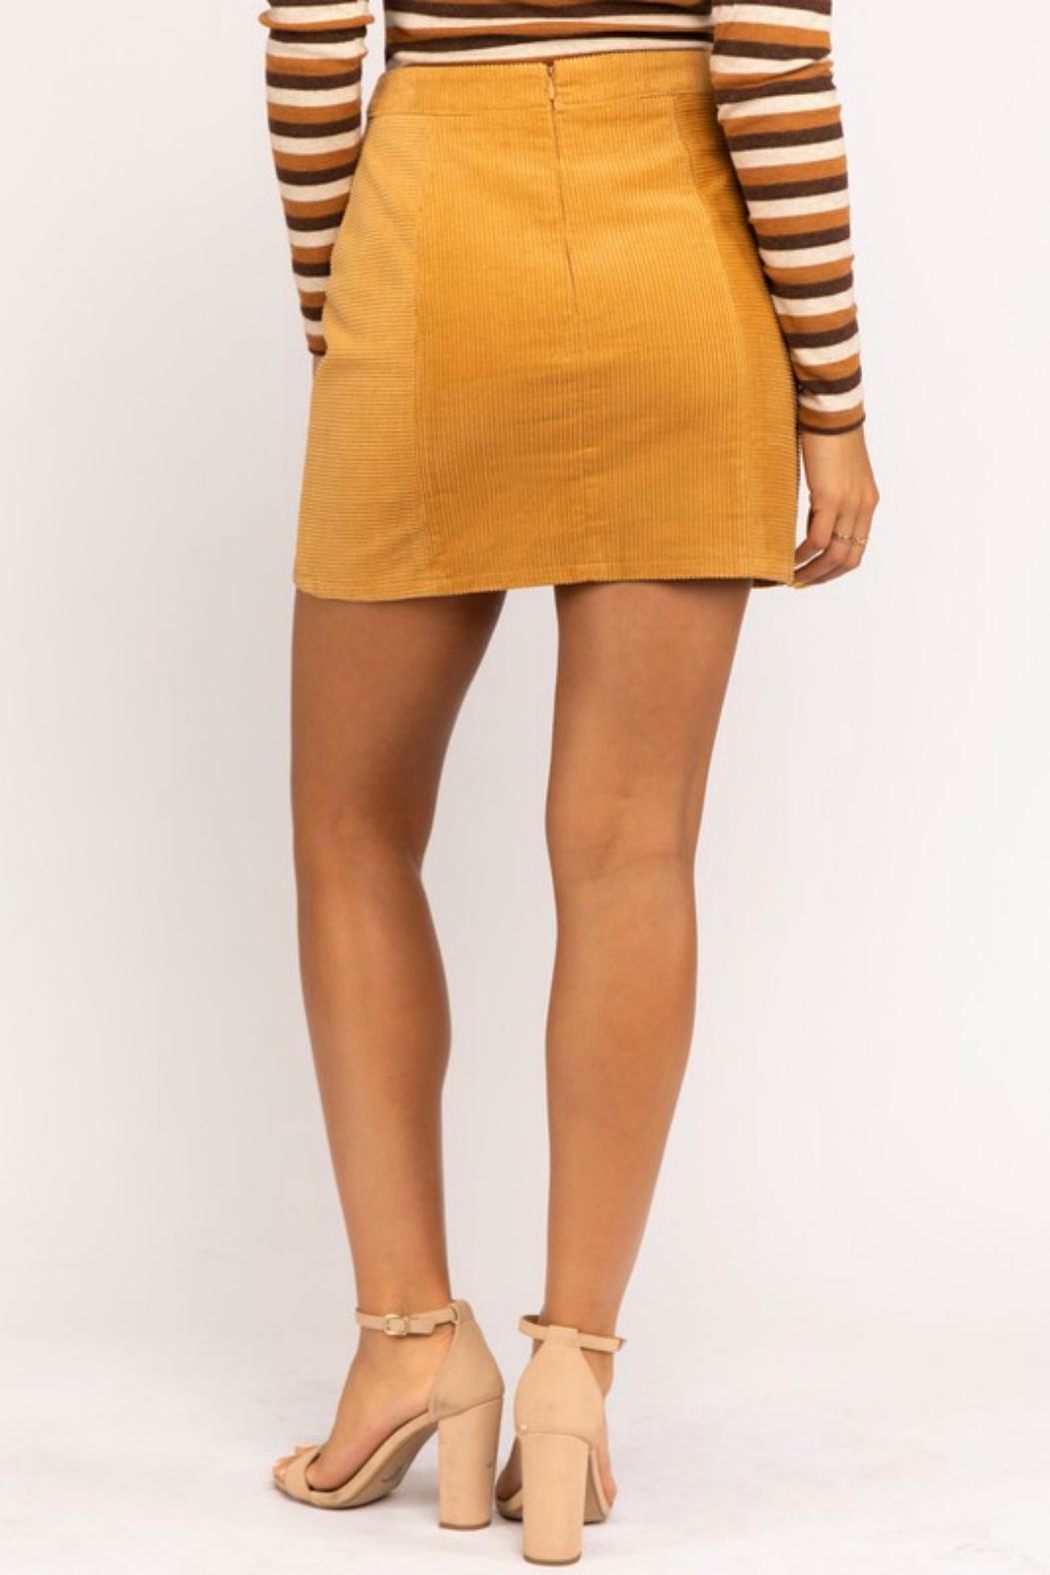 Pretty Little Things Mustard Corduroy Skirt - Side Cropped Image